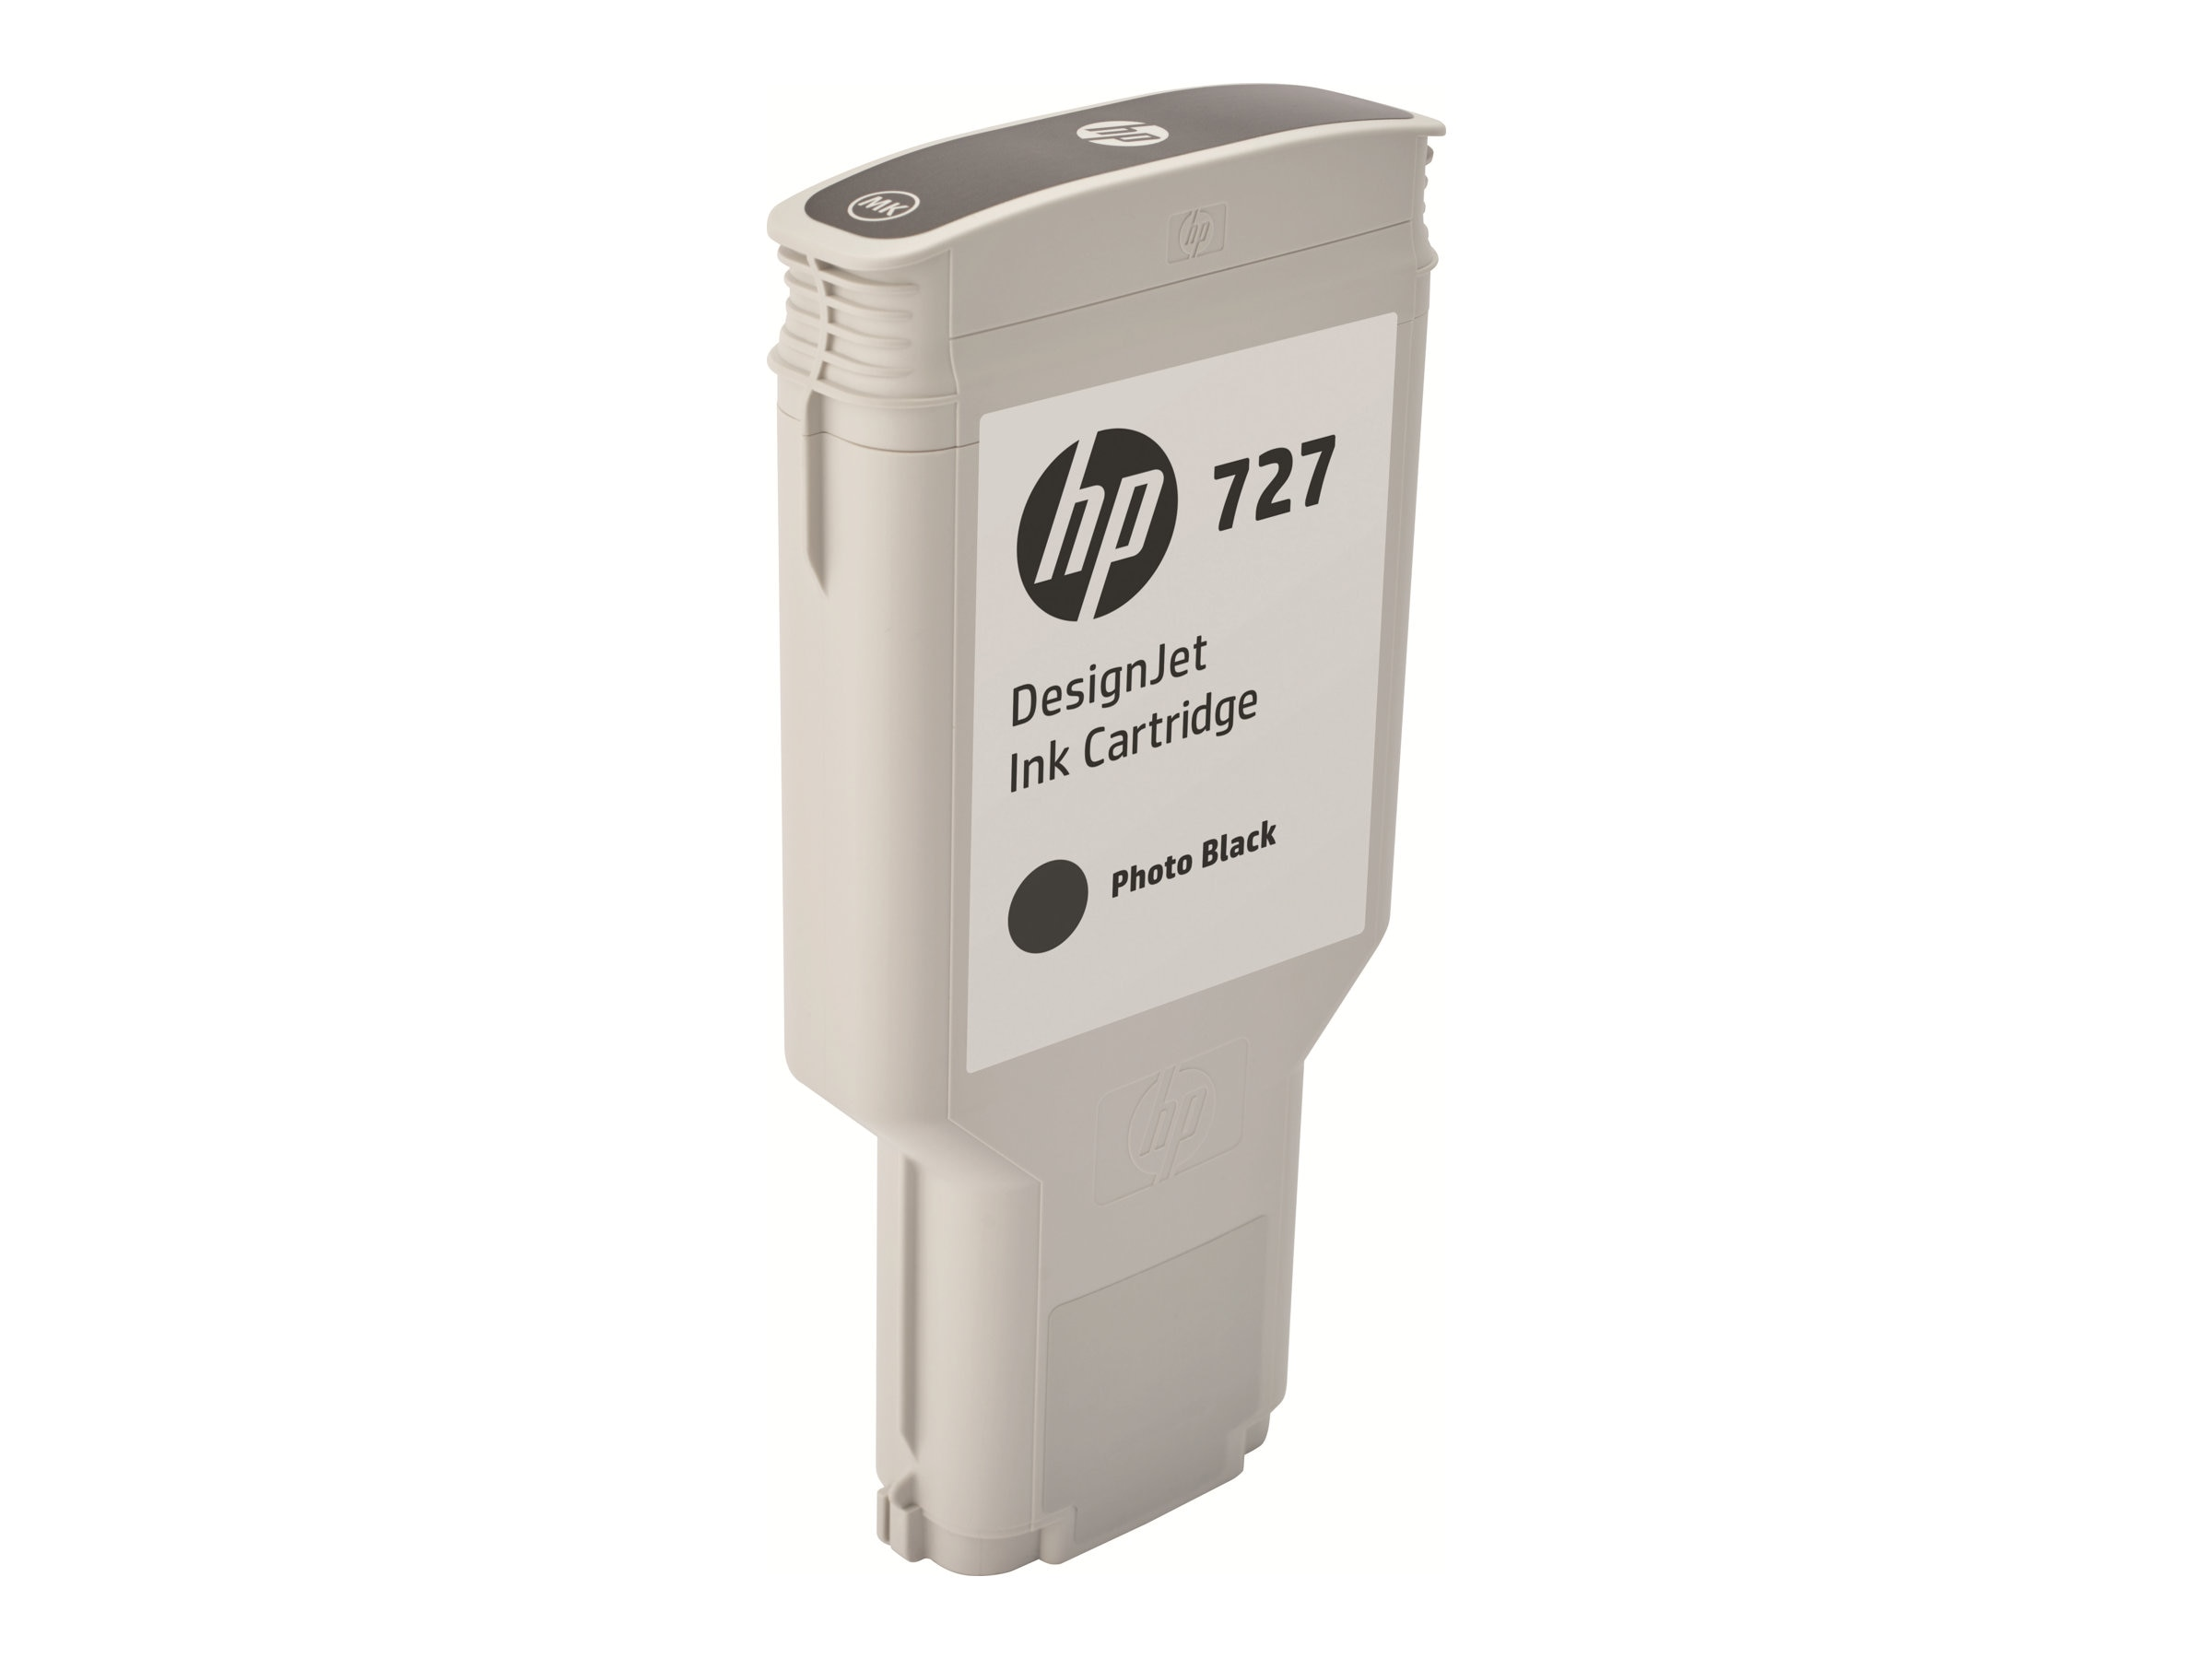 HP 727 (F9J79A) 300-ml Photo Black DesignJet Ink Cartridge